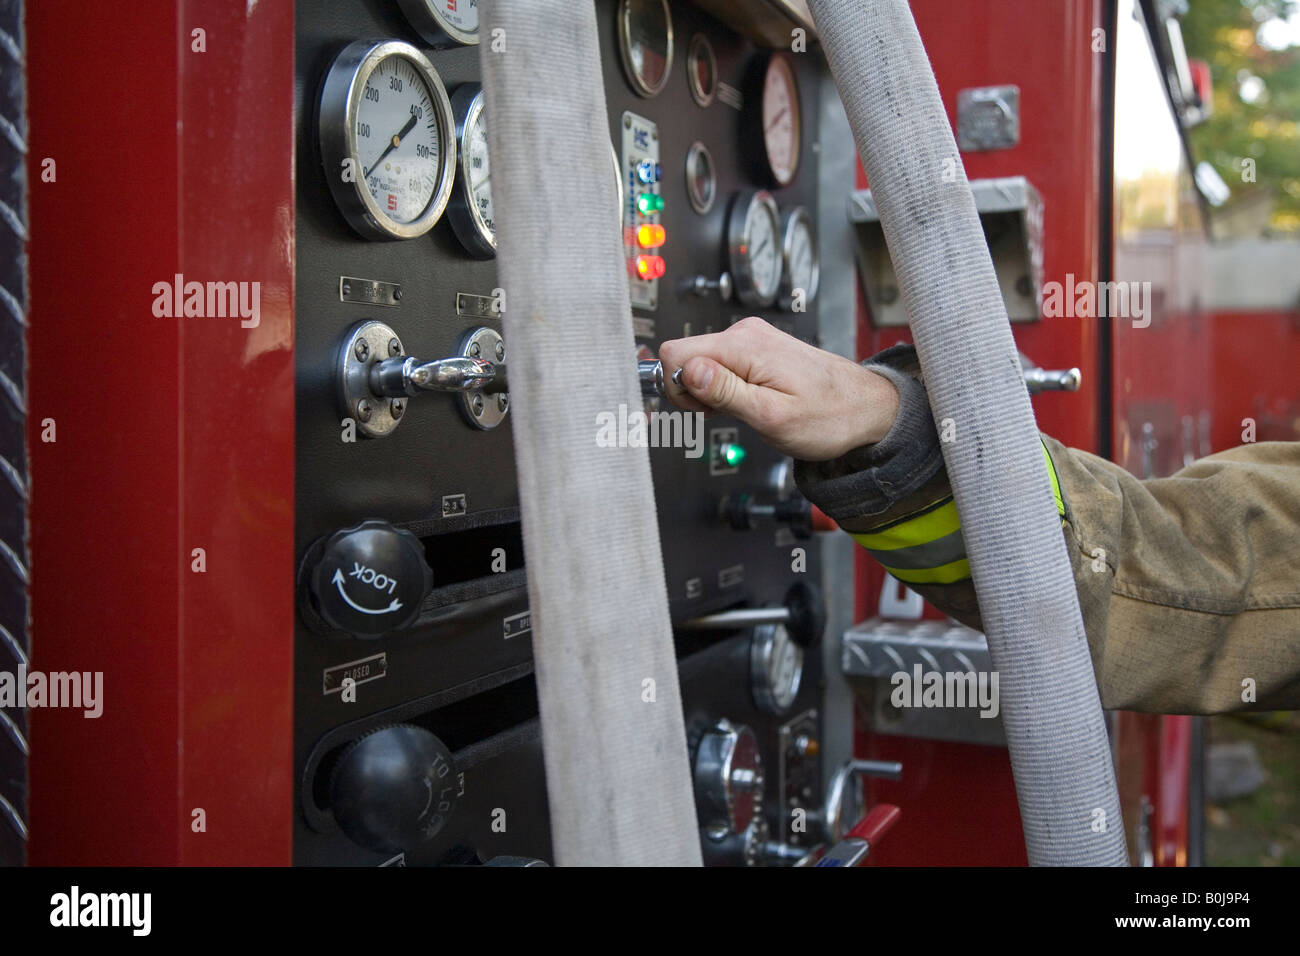 Volunteer Fire Department - Stock Image